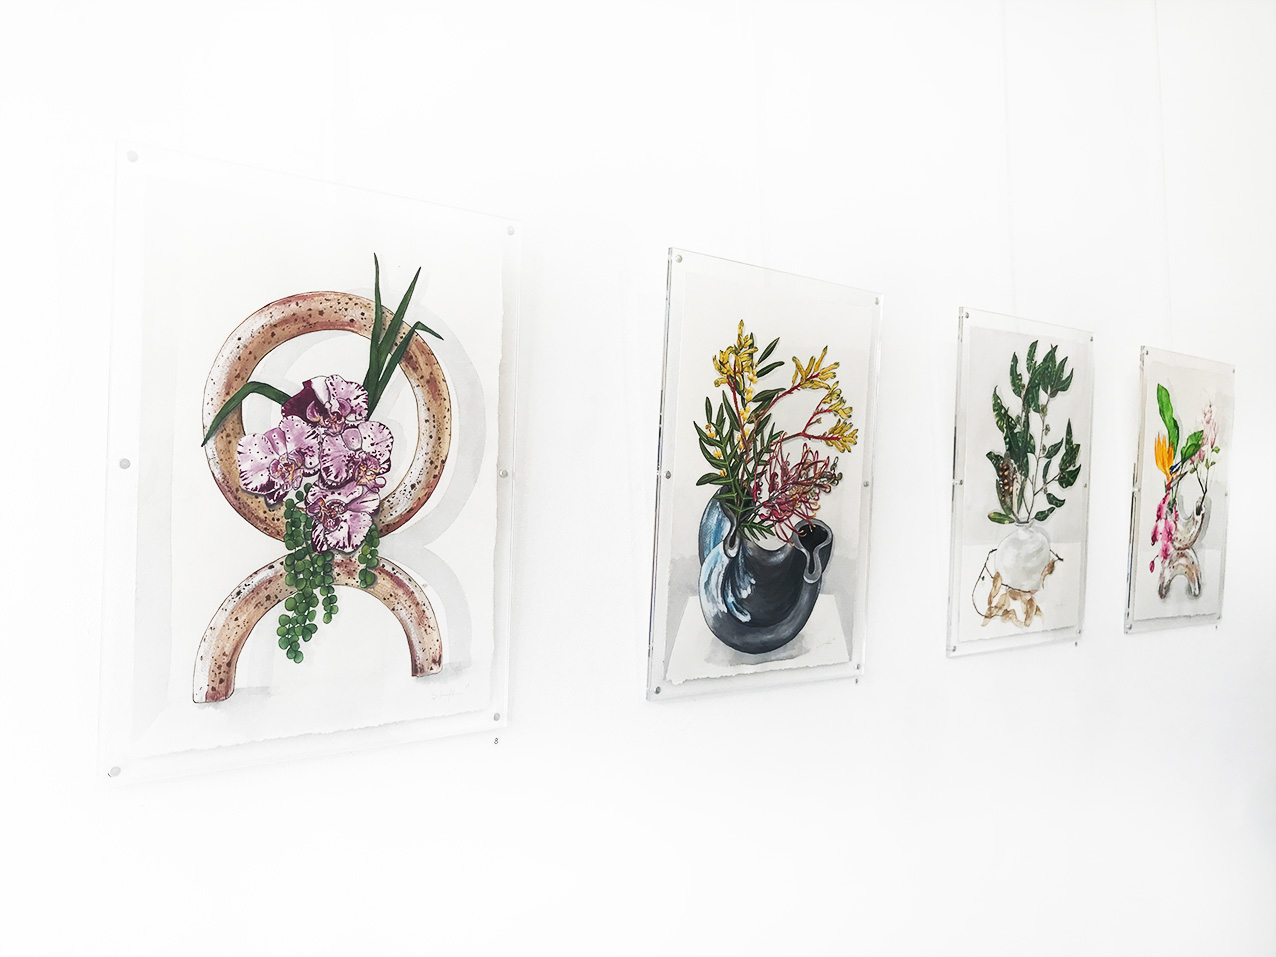 Sarah Jane Lightfoot - (left to right)  Orchid Orbit, Grevillea Curl, Eucalypt us Swell, Tropical Helix  - Watercolour and Gouache on Arches 300 gsm 100% Cotton Paper